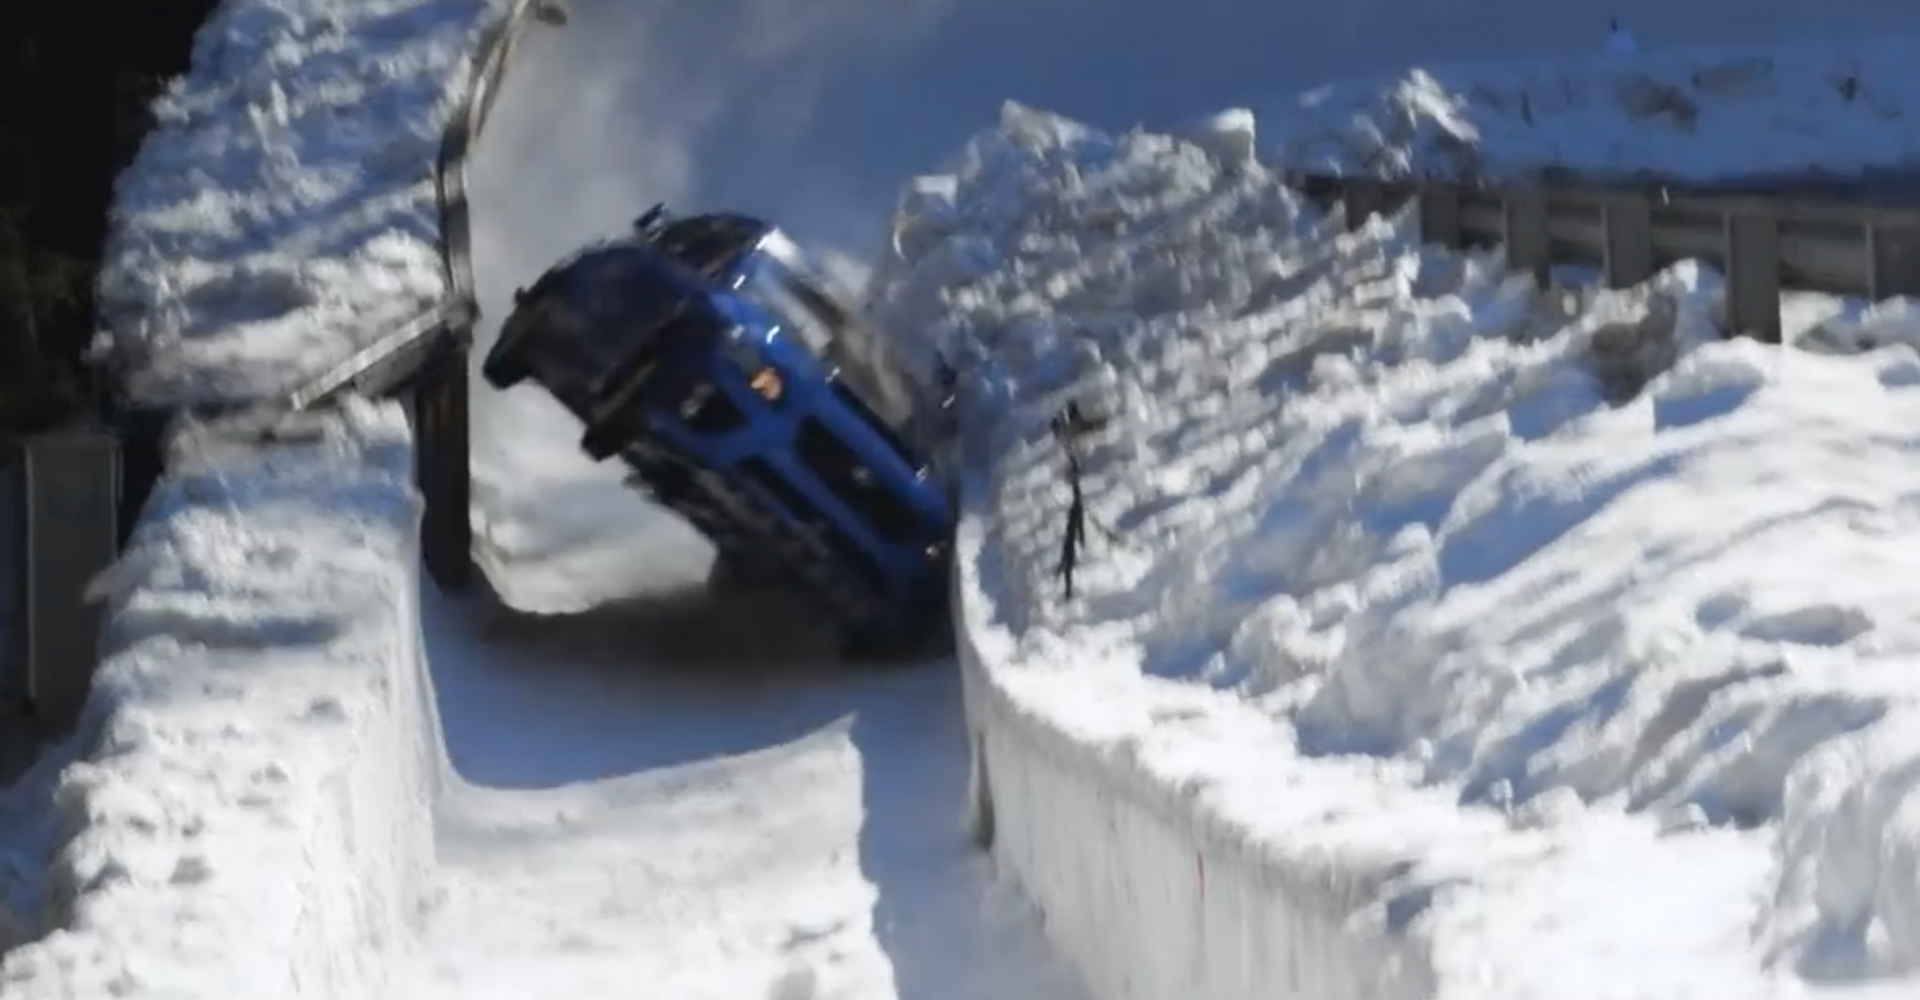 Subaru WRX 'Slides' Down Olympic Bobsled Run